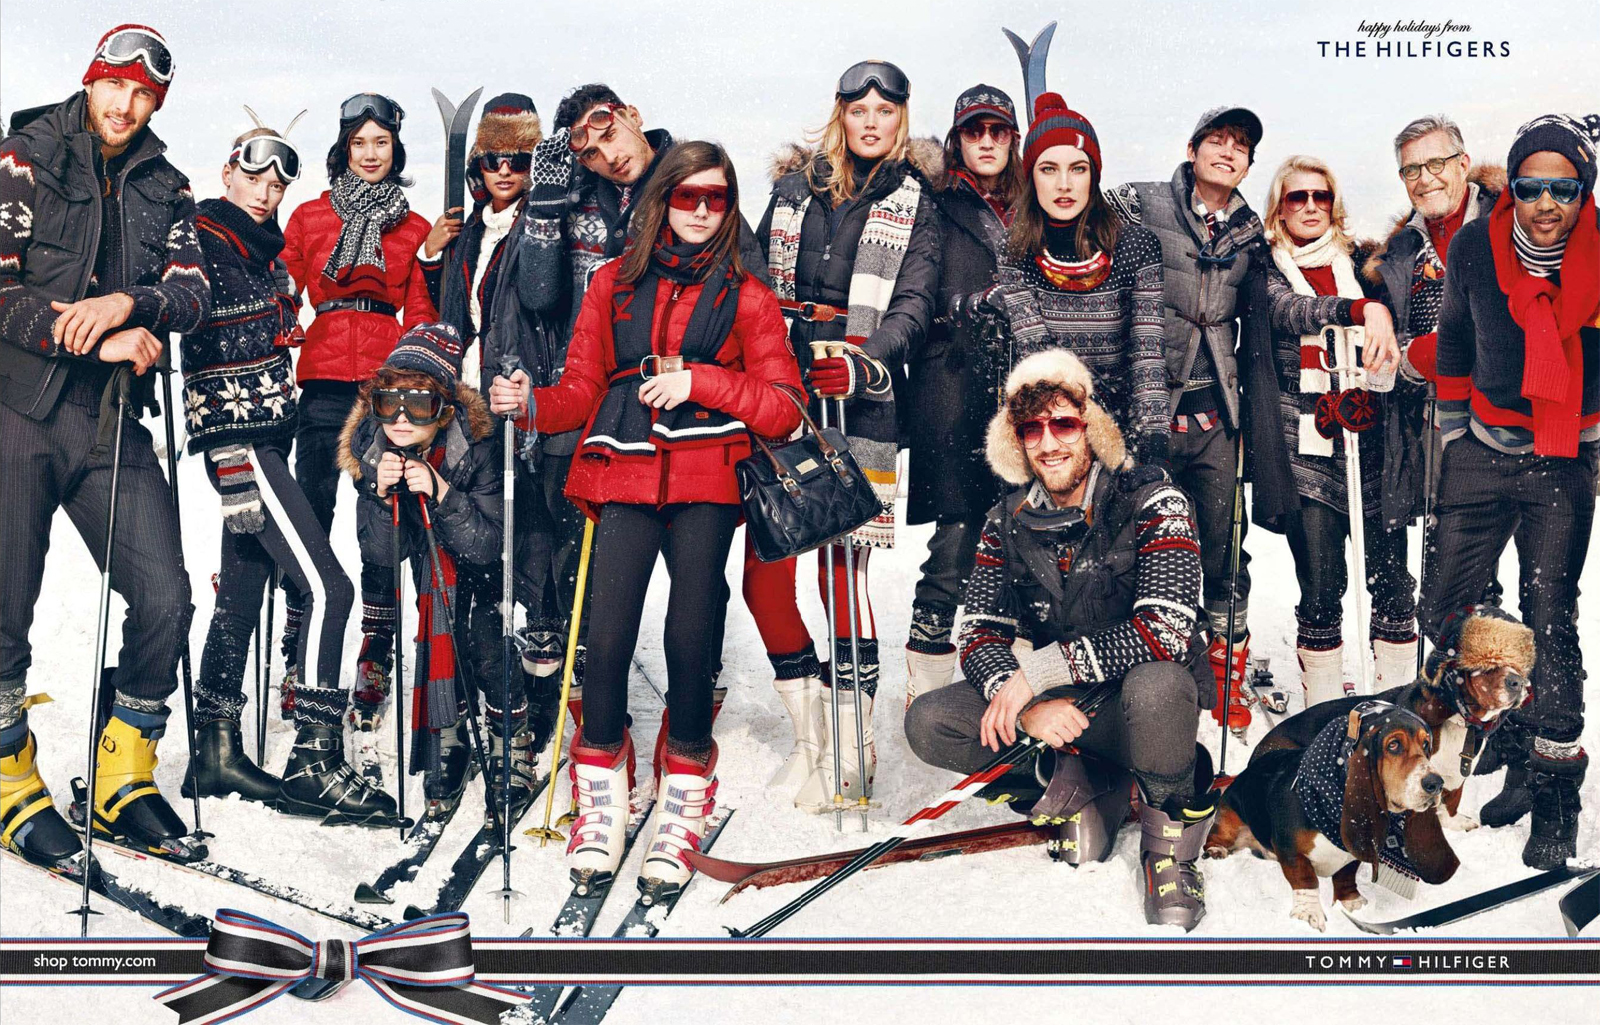 Arthur Kulkov, Sam Way, Noah Mills & Others Spend Christmas on the Slopes for Tommy Hilfiger Holiday 2012 Campaign